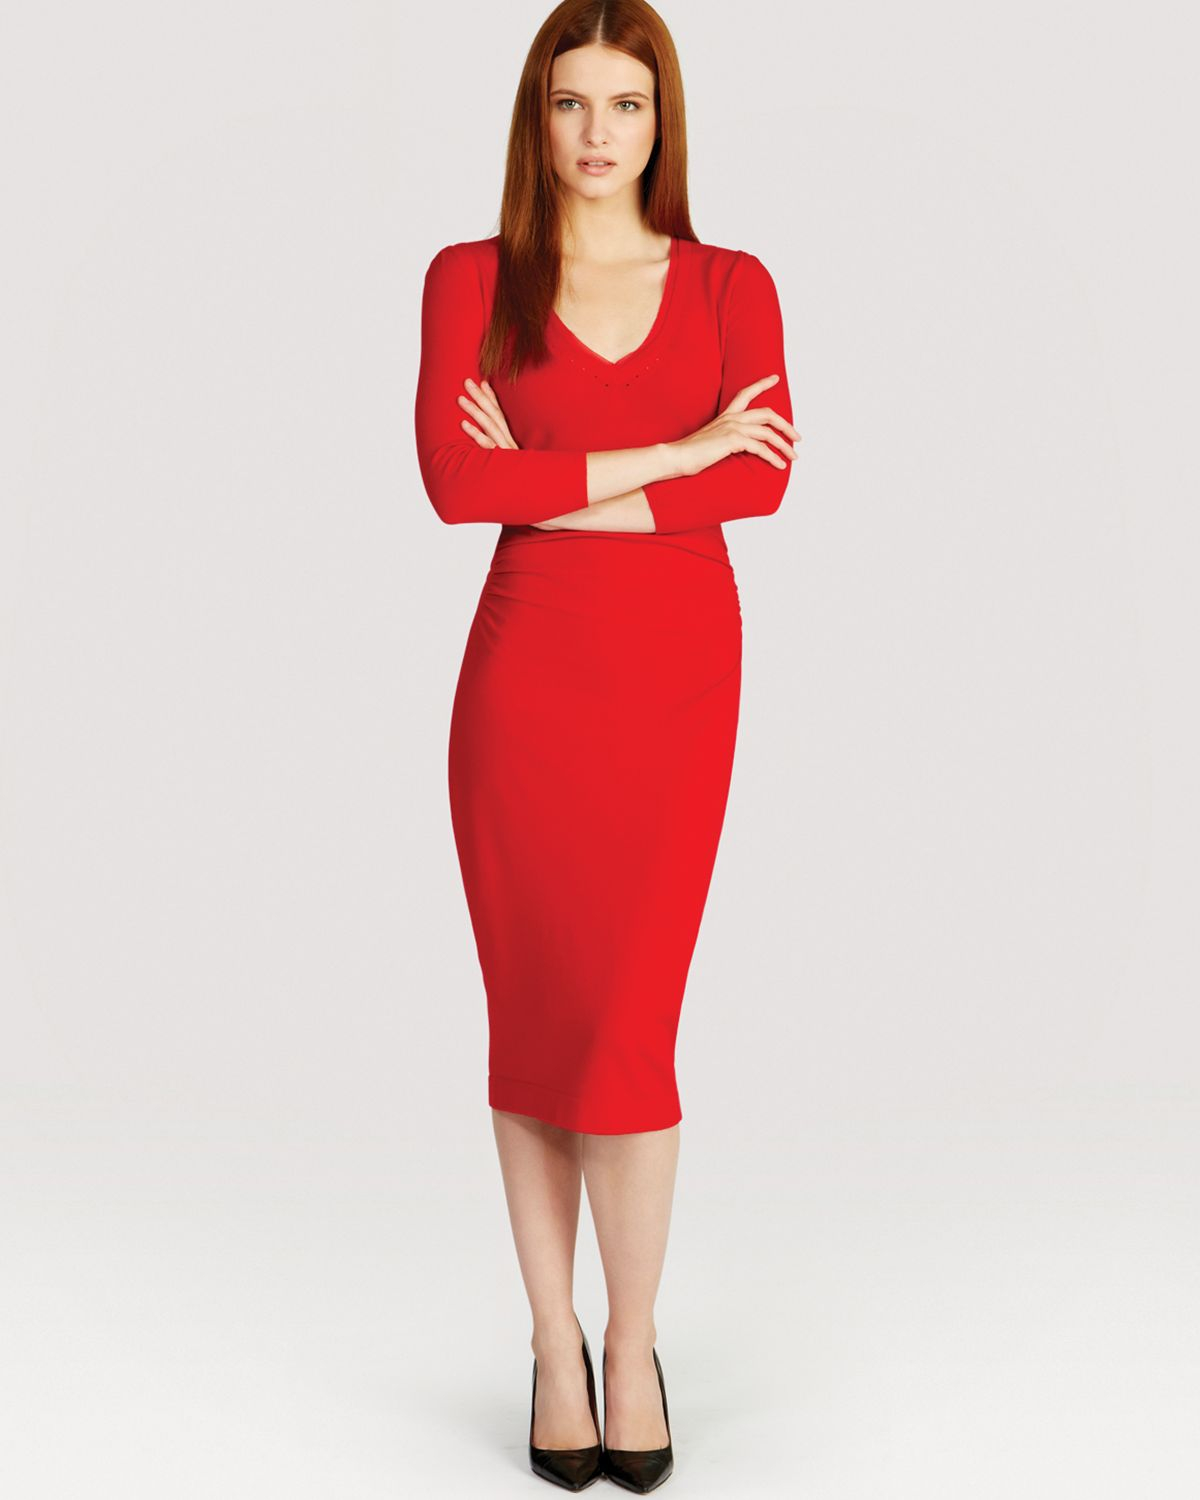 Coast Knit Dress Taite in Red  Lyst